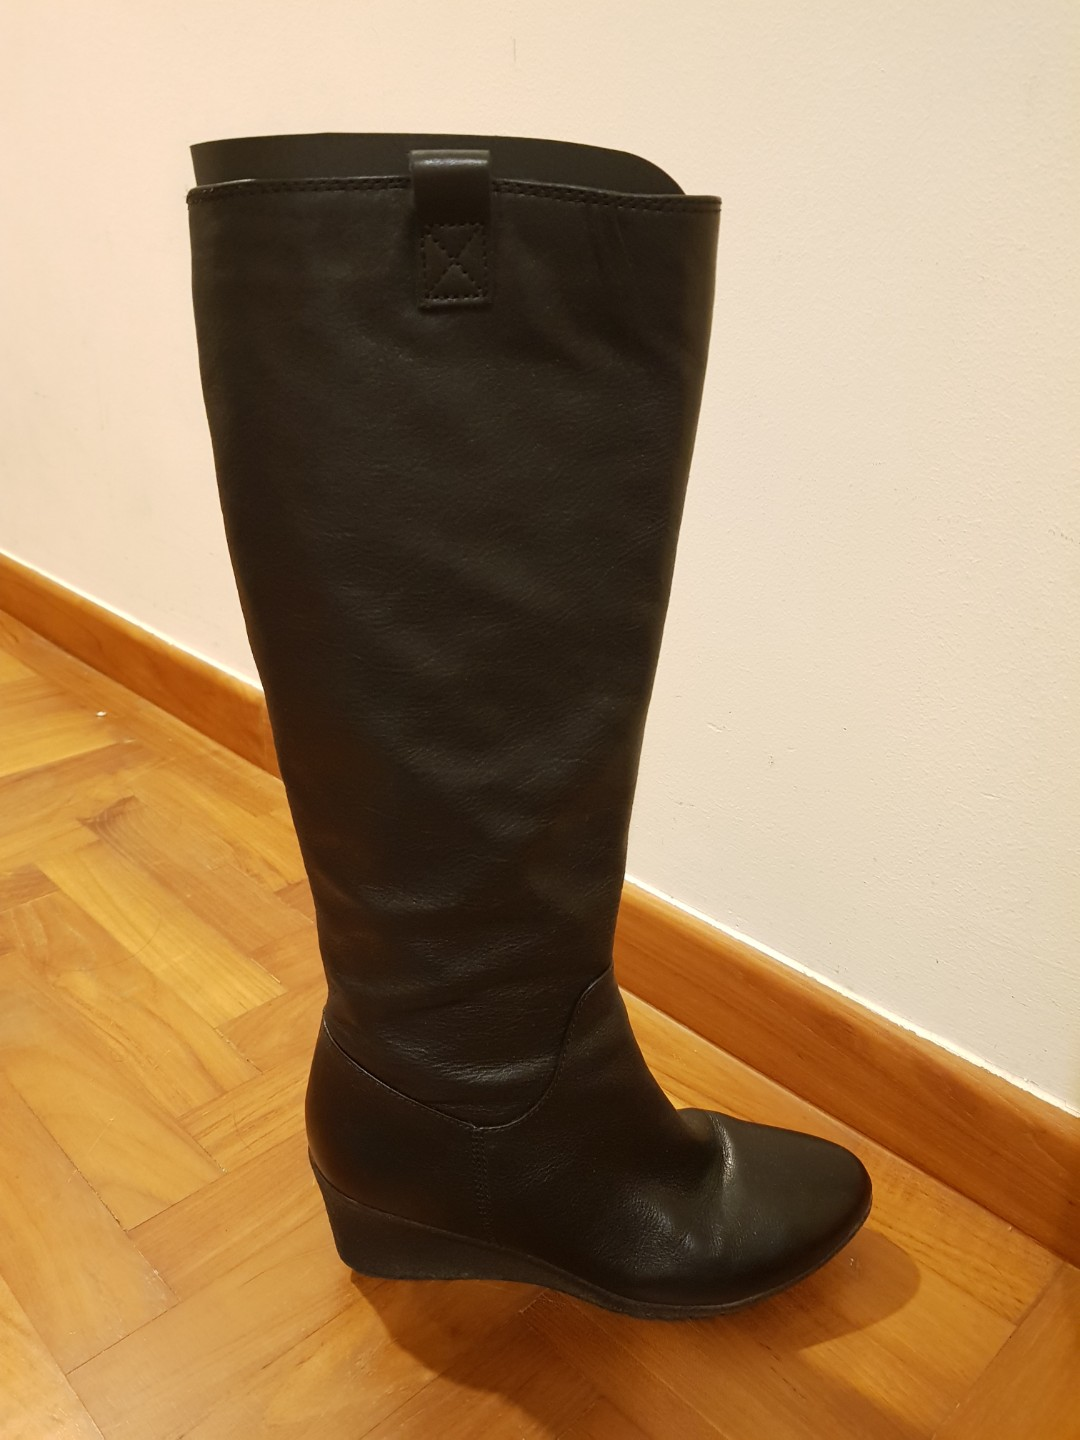 677b1ccdf19 Staccato wedge heel knee boots